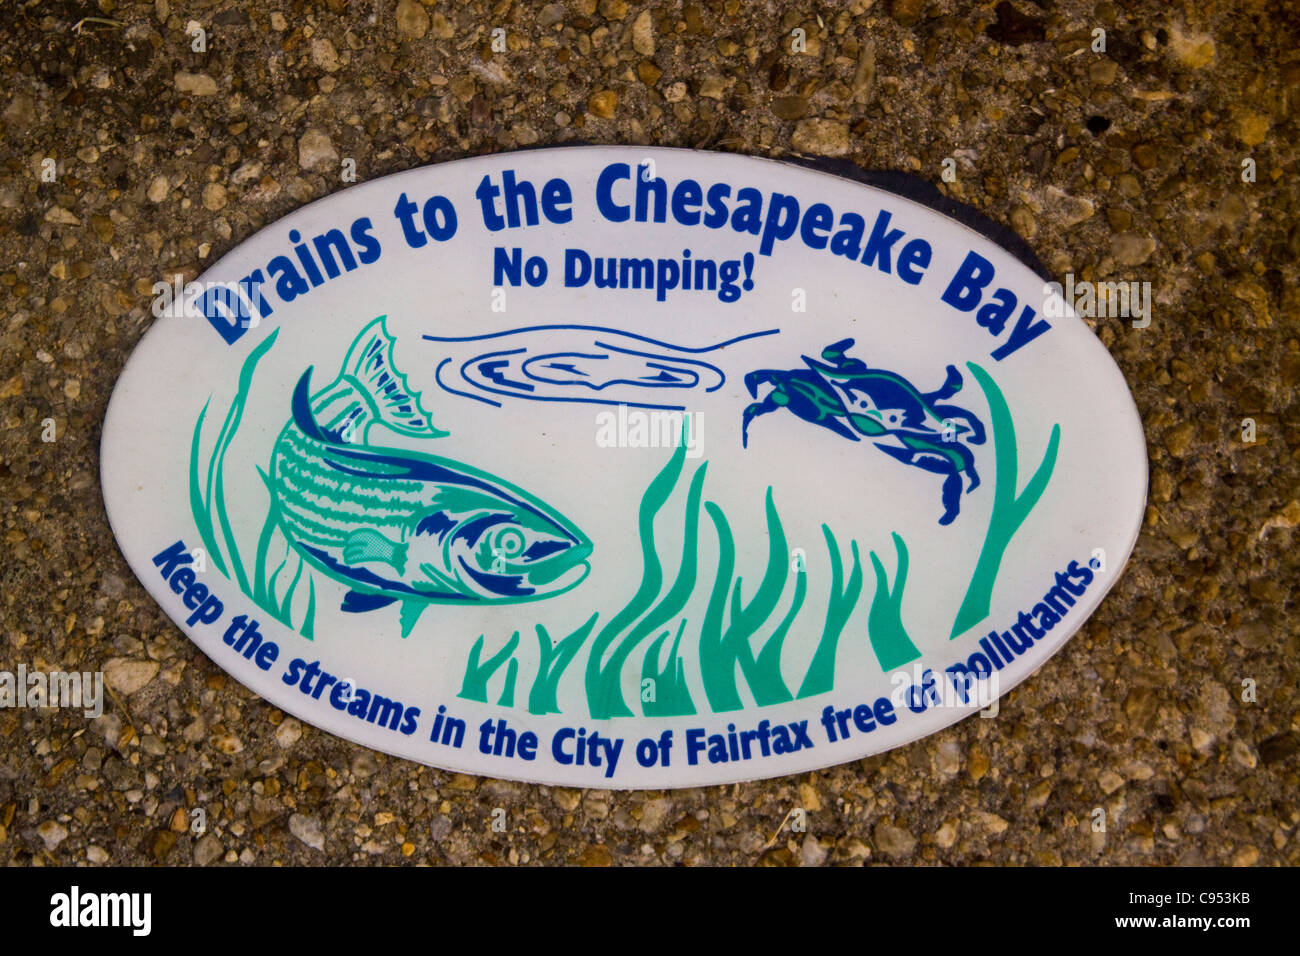 City of Fairfax Virginia No Dumping Drains to the Chesapeake Bay sign on top of a storm drainage structure - Stock Image